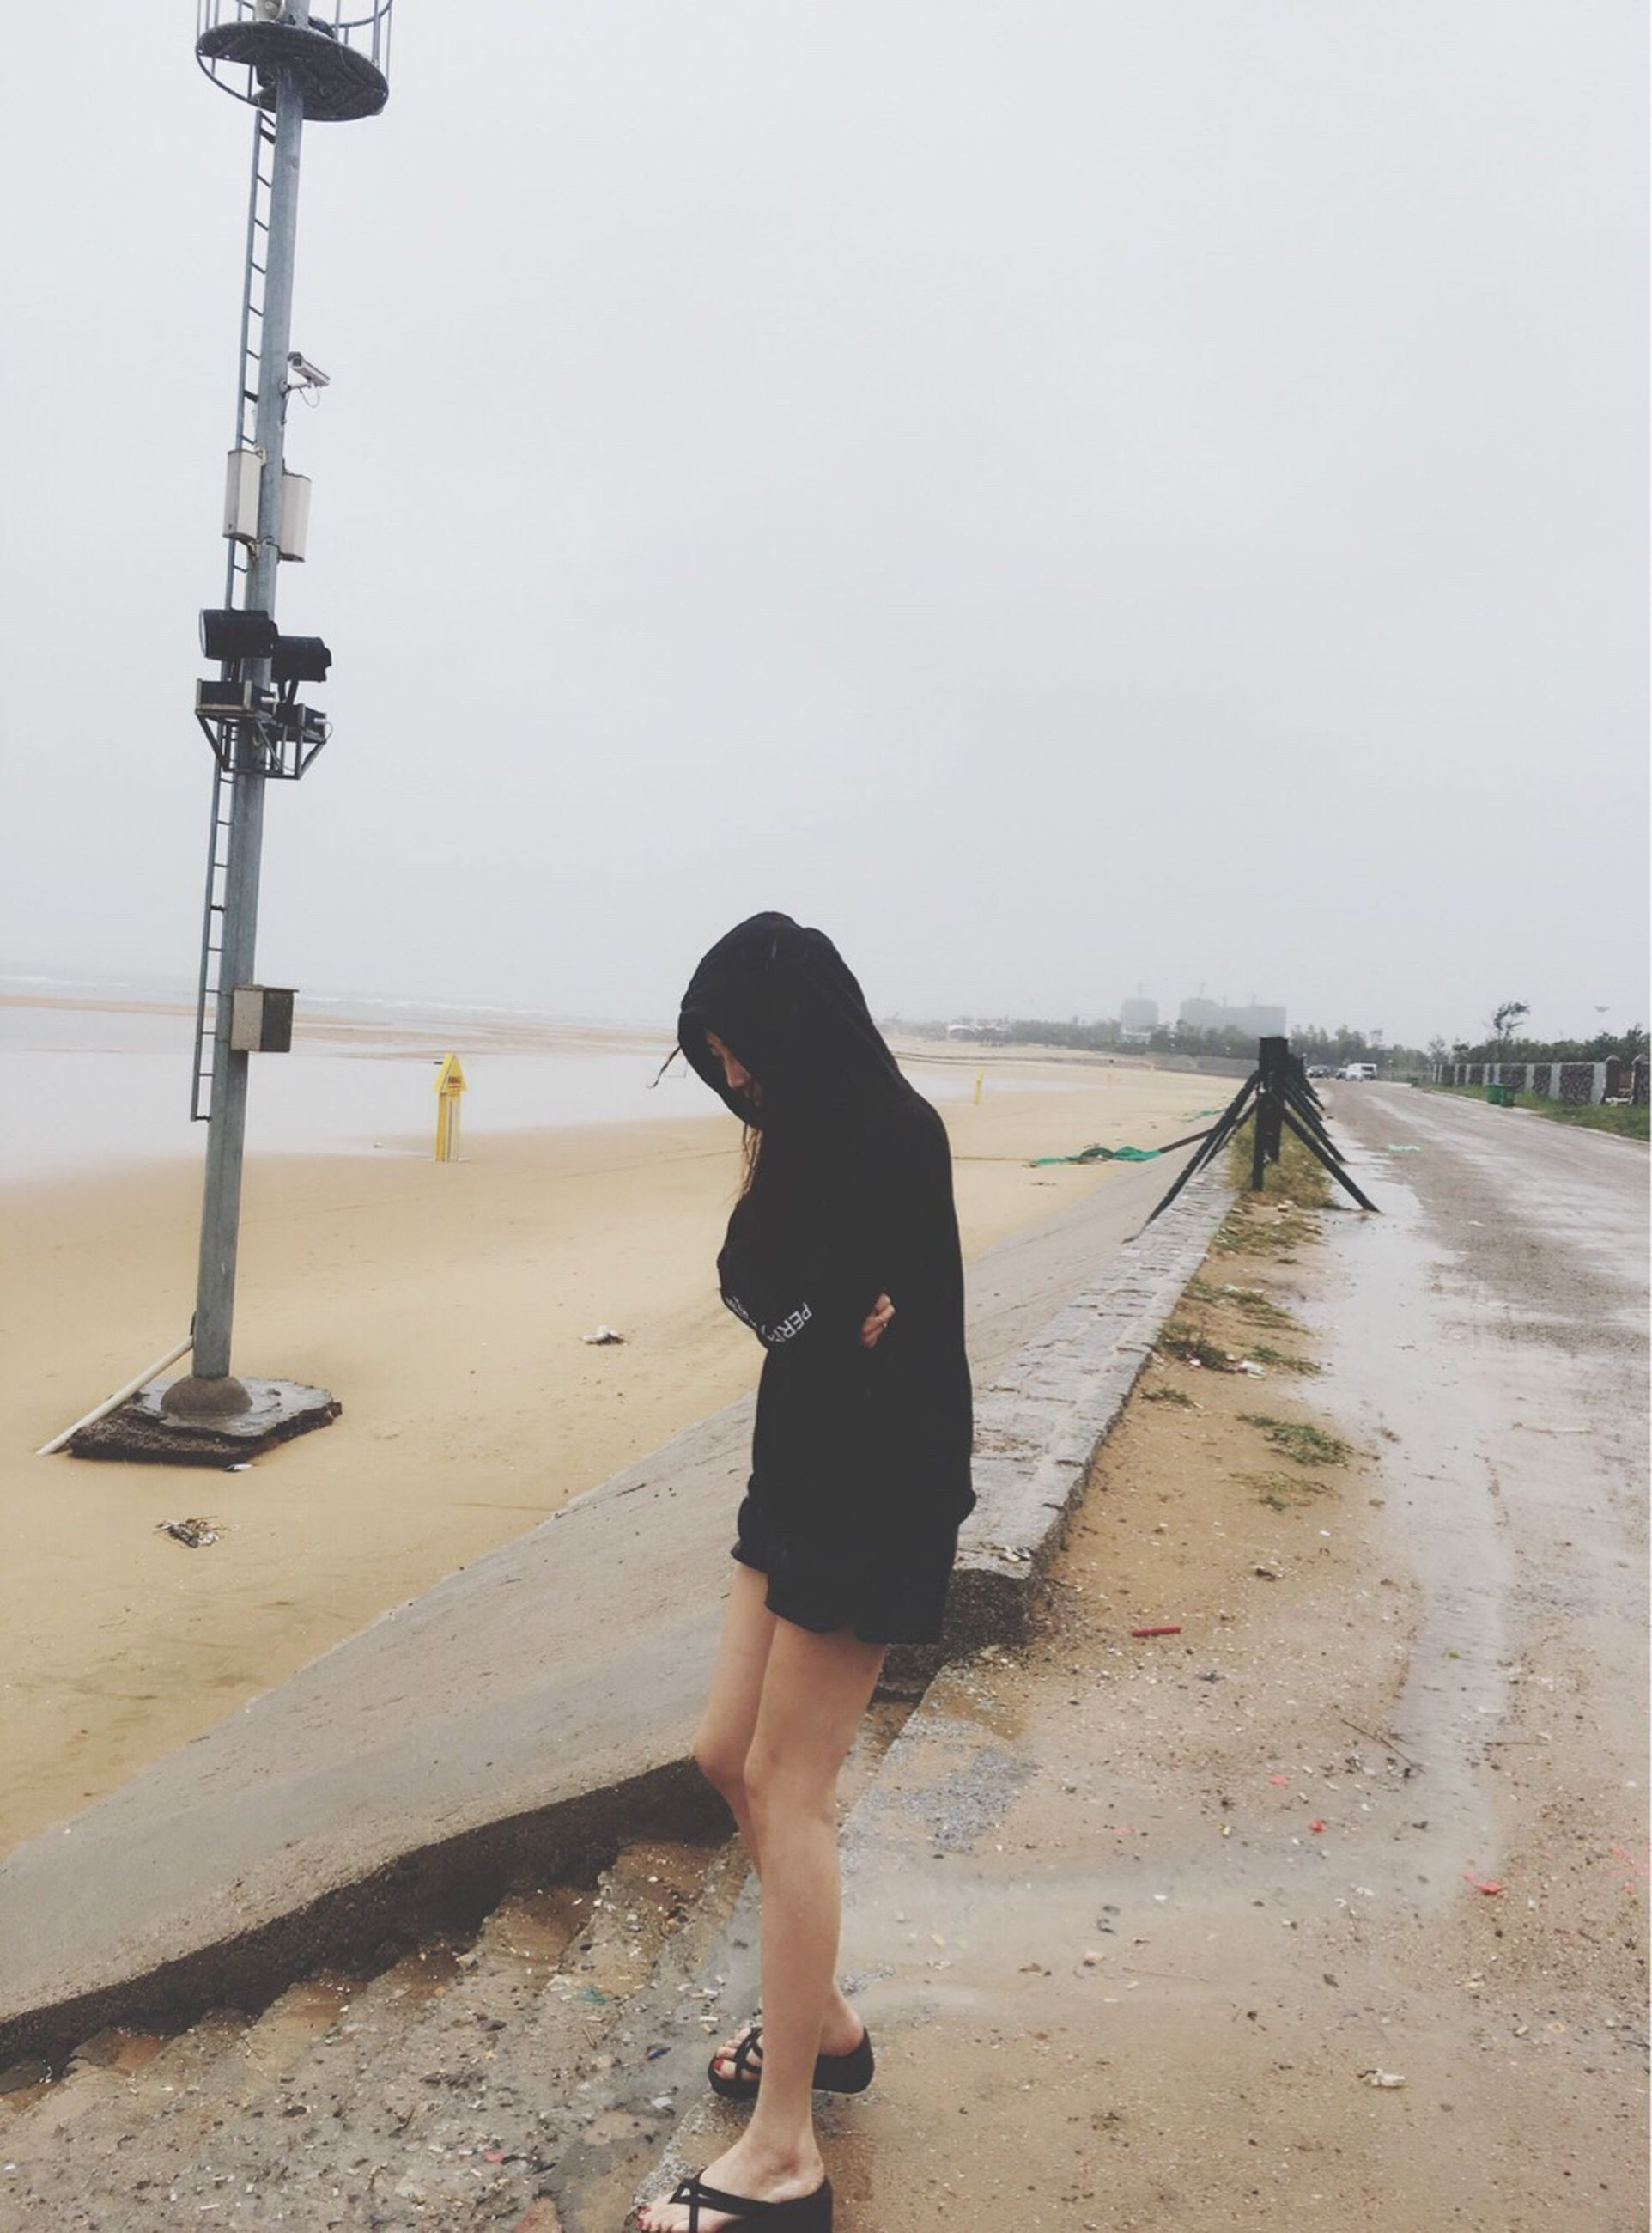 clear sky, full length, walking, copy space, rear view, sea, tranquil scene, scenics, day, sky, tranquility, casual clothing, outdoors, nature, person, beauty in nature, vacations, shore, solitude